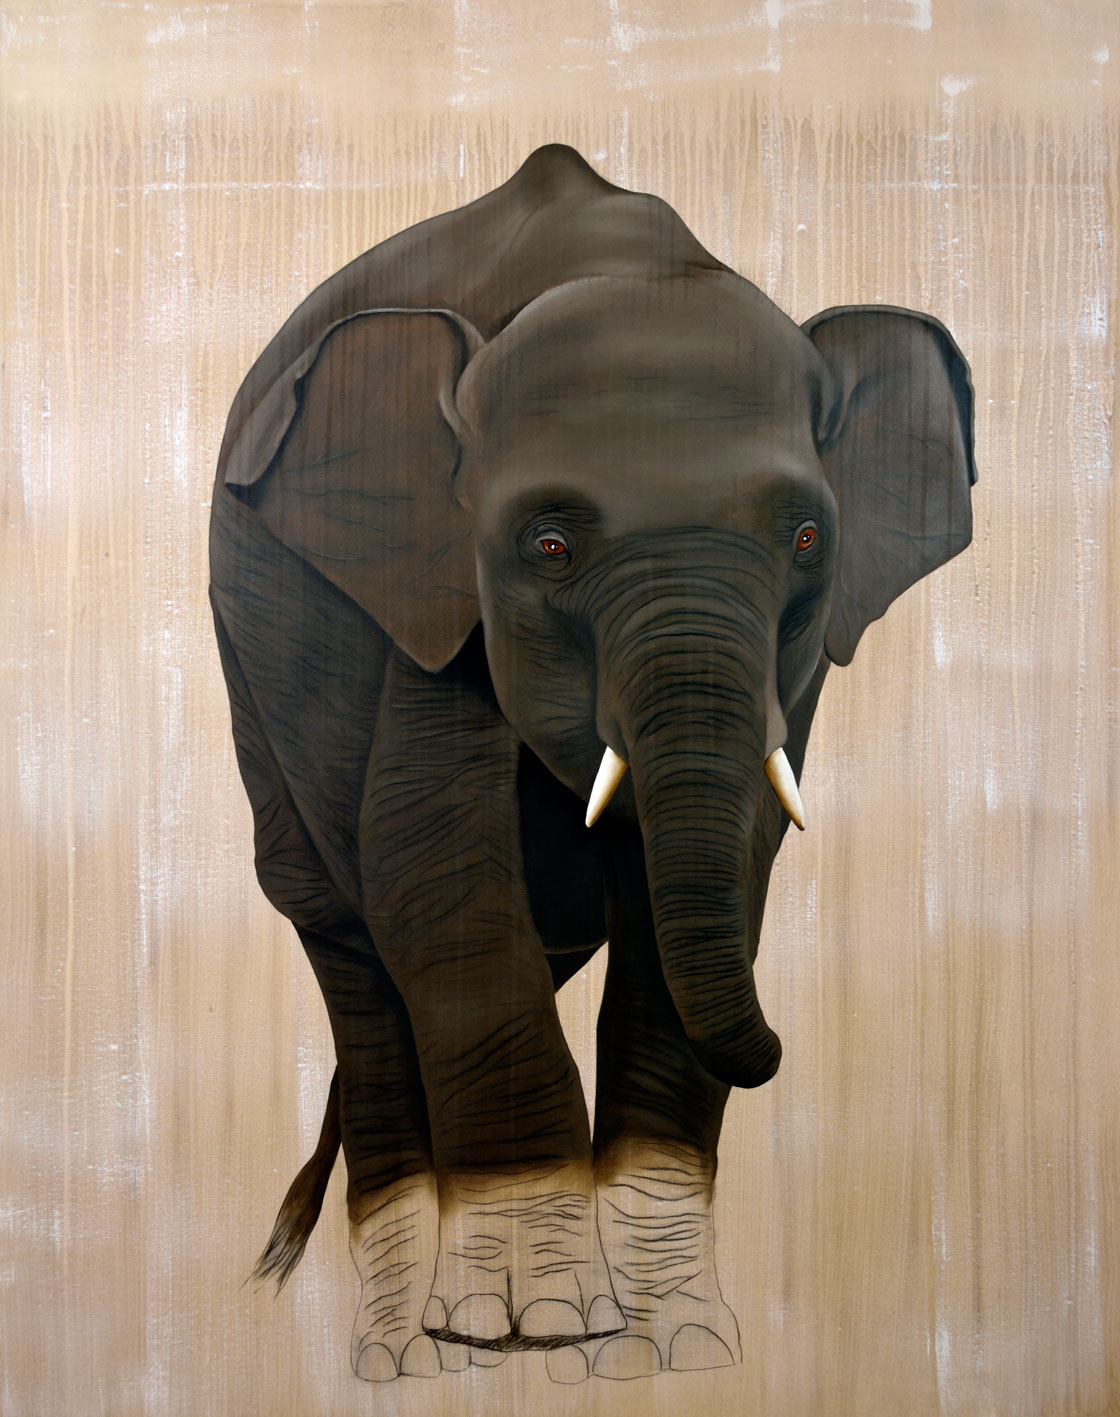 ELEPHAS MAXIMUS elephas-maximus-baby-elephant-asian-delete-threatened-endangered-extinction Animal painting by Thierry Bisch pets wildlife artist painter canvas art decoration